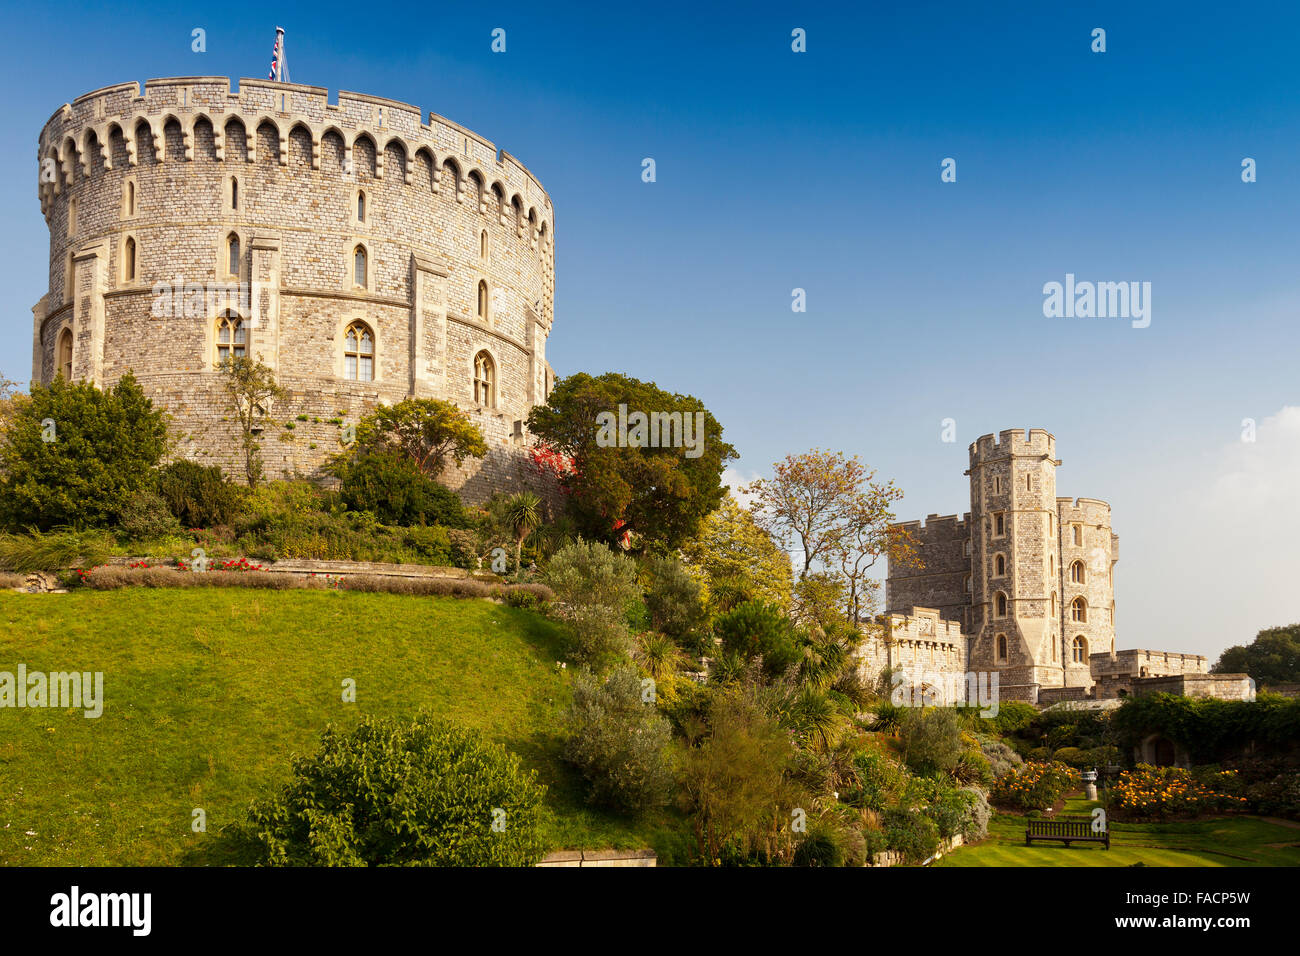 The garden below the Round (left) and King Edward III (right) Towers at Windsor Castle, Berkshire, England, UK - Stock Image